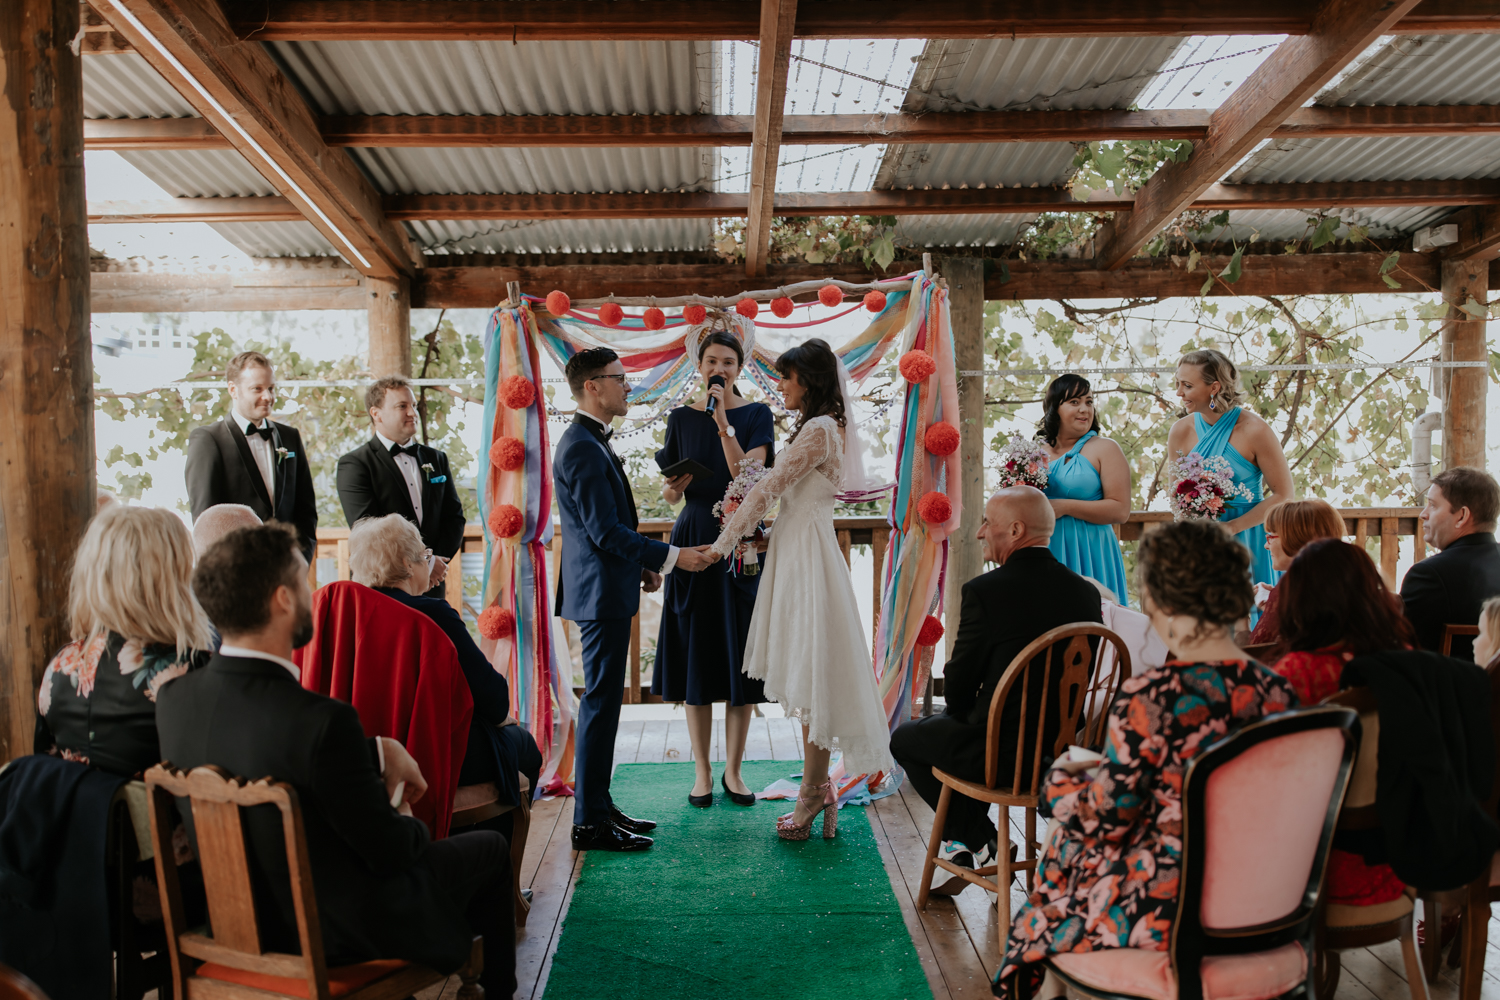 Stacey + Ben's Ceres wedding ceremony styled by Good Day Rentals